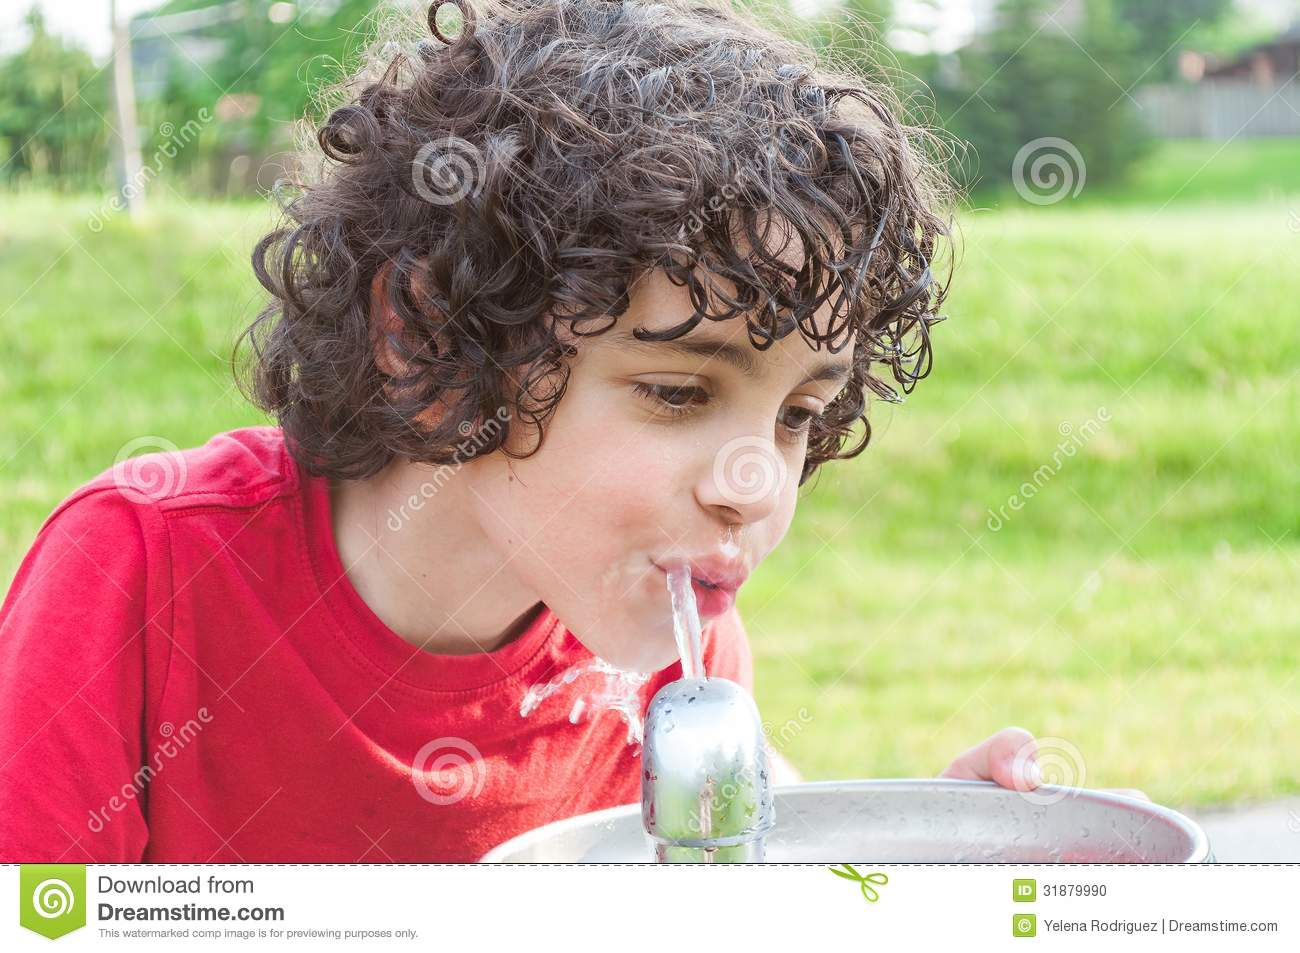 Child Drinking From A Water Fountain In A Park Stock Photo - Image ...